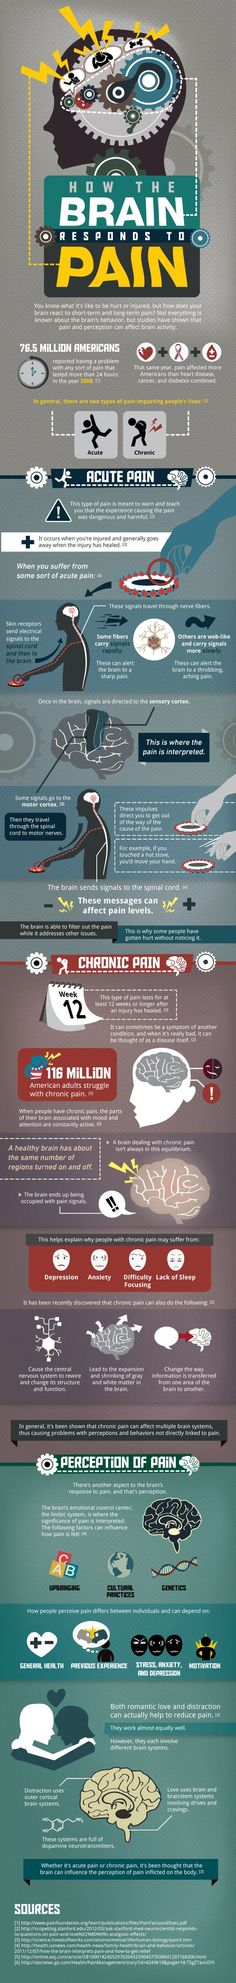 How your Brain responds to Pain The neuroscience of how chronic pain rewires your brain [infographic] - Your Brain Health Chronic Fatigue, Chronic Pain, Chronic Illness, Brain Injury, Invisible Illness, Pain Management, Brain Health, Autoimmune Disease, Physiology